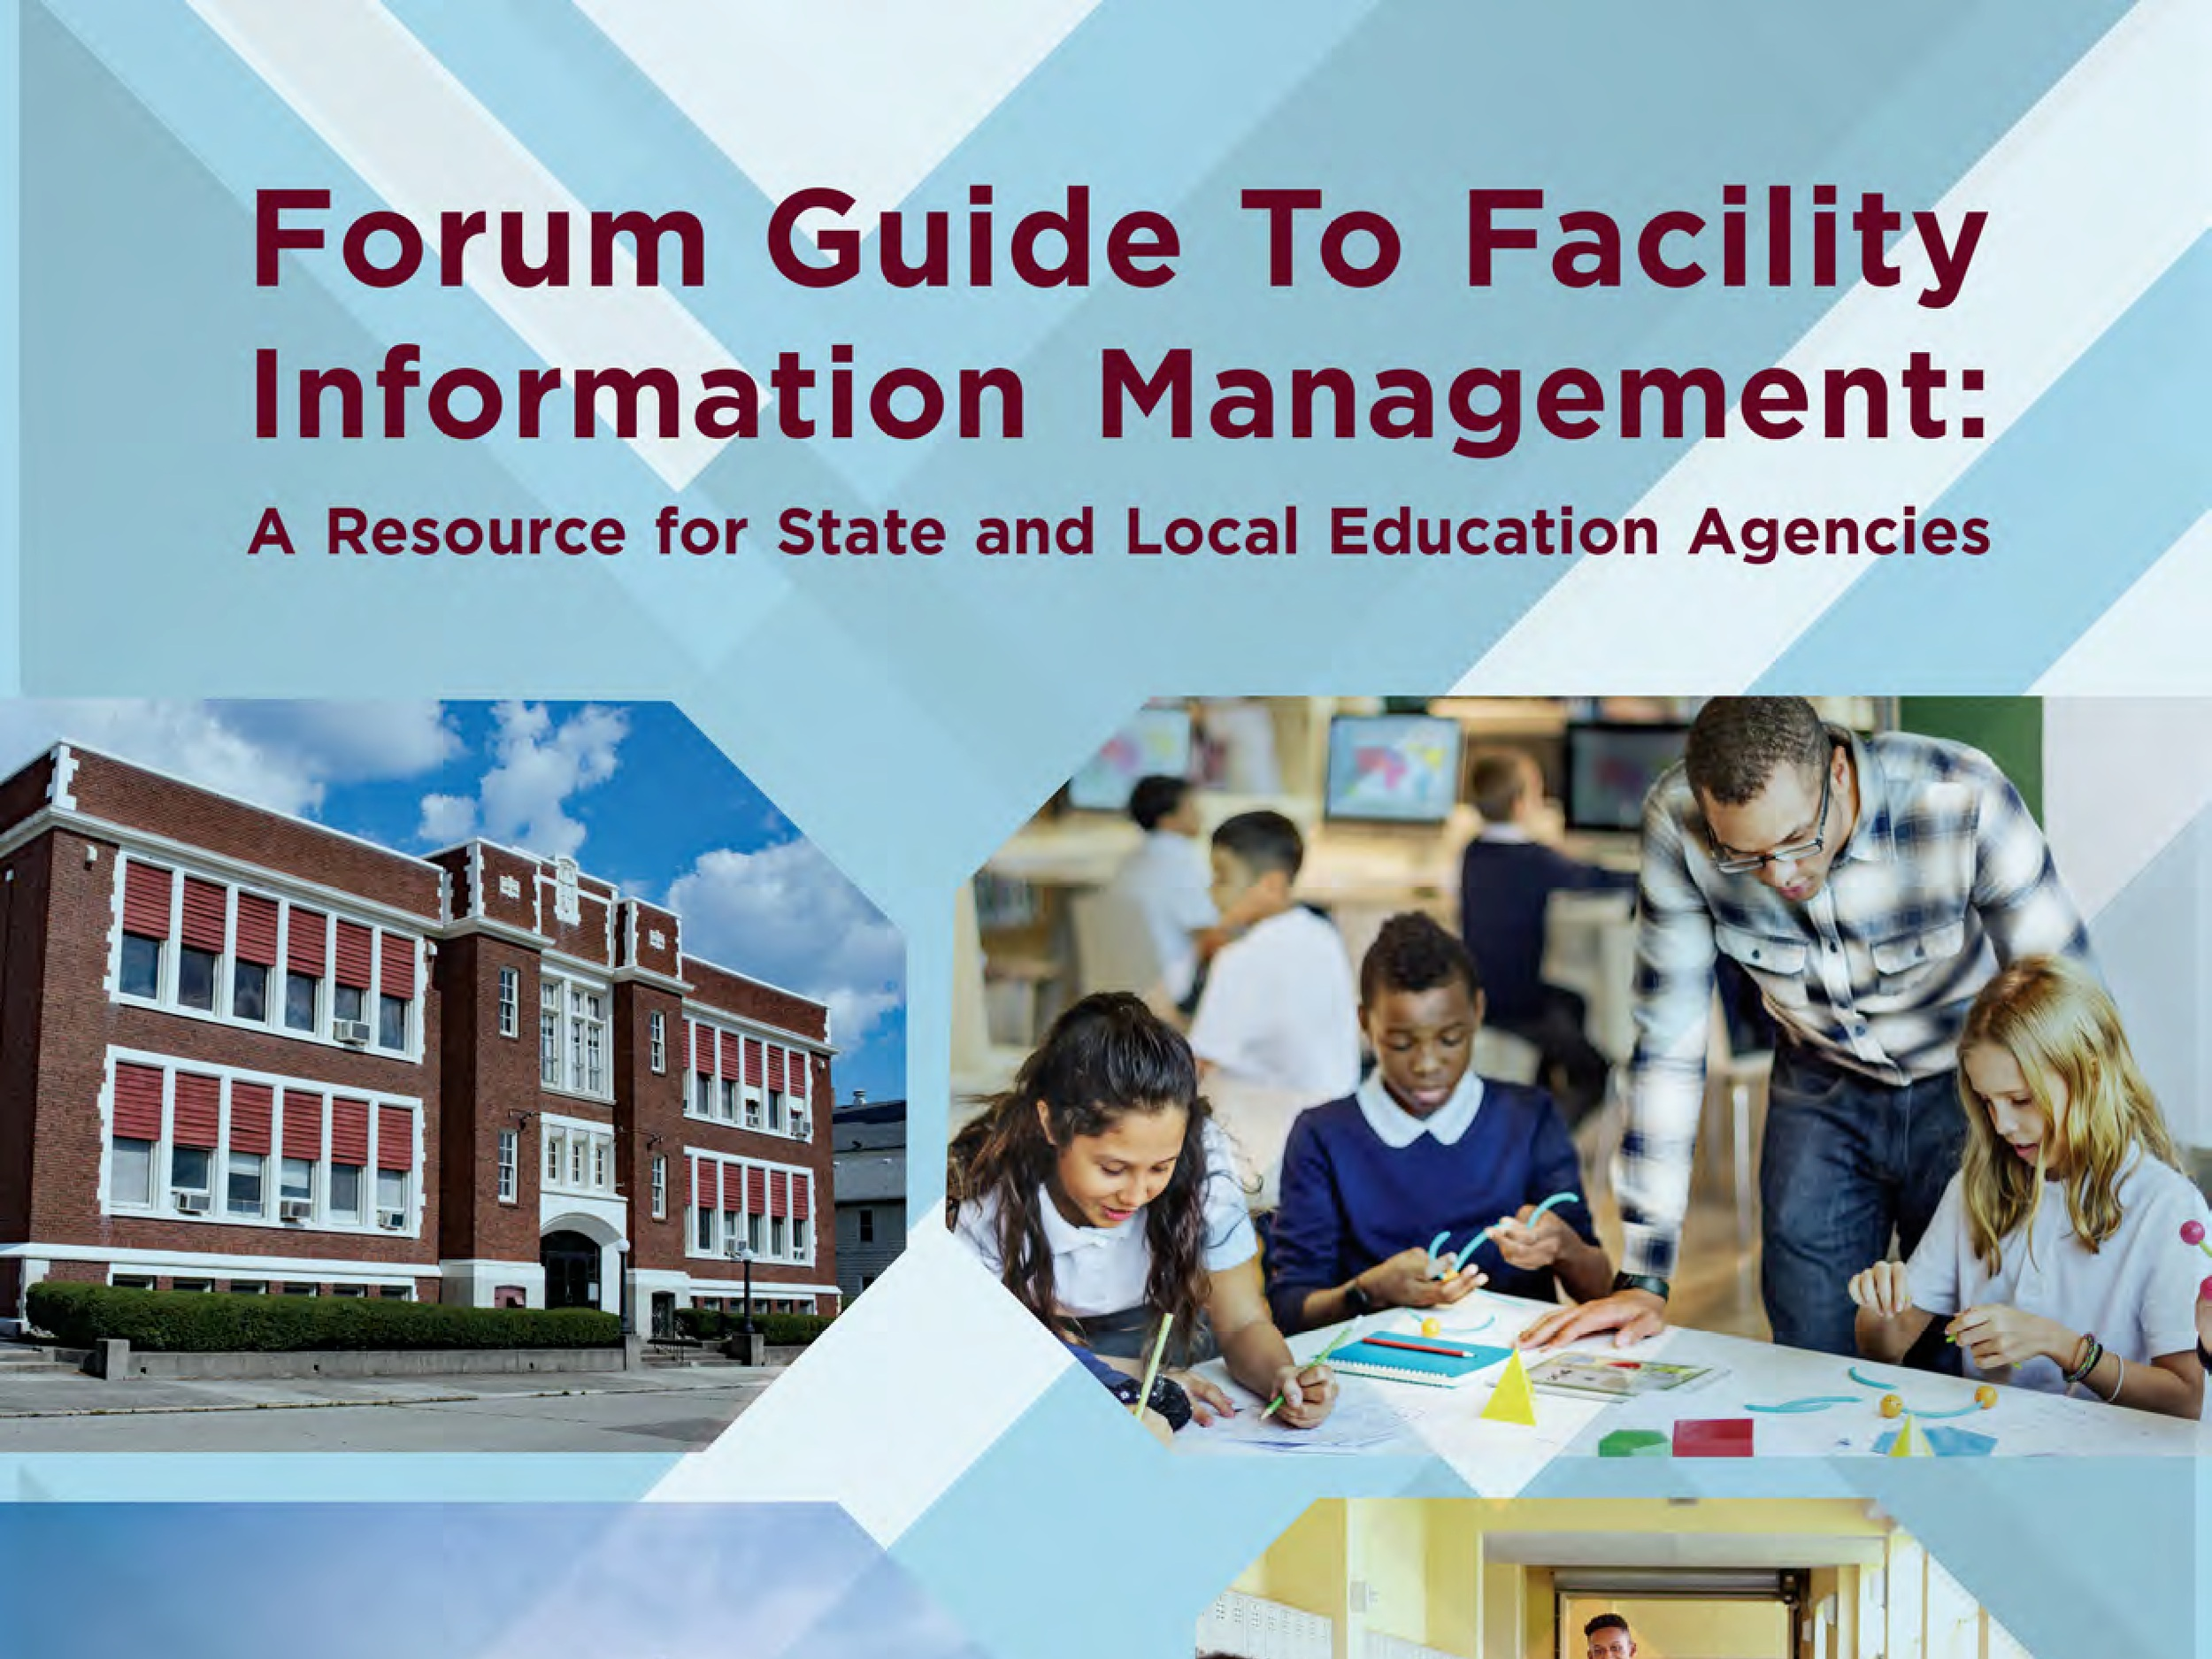 Forum Guide to Facility Information Management